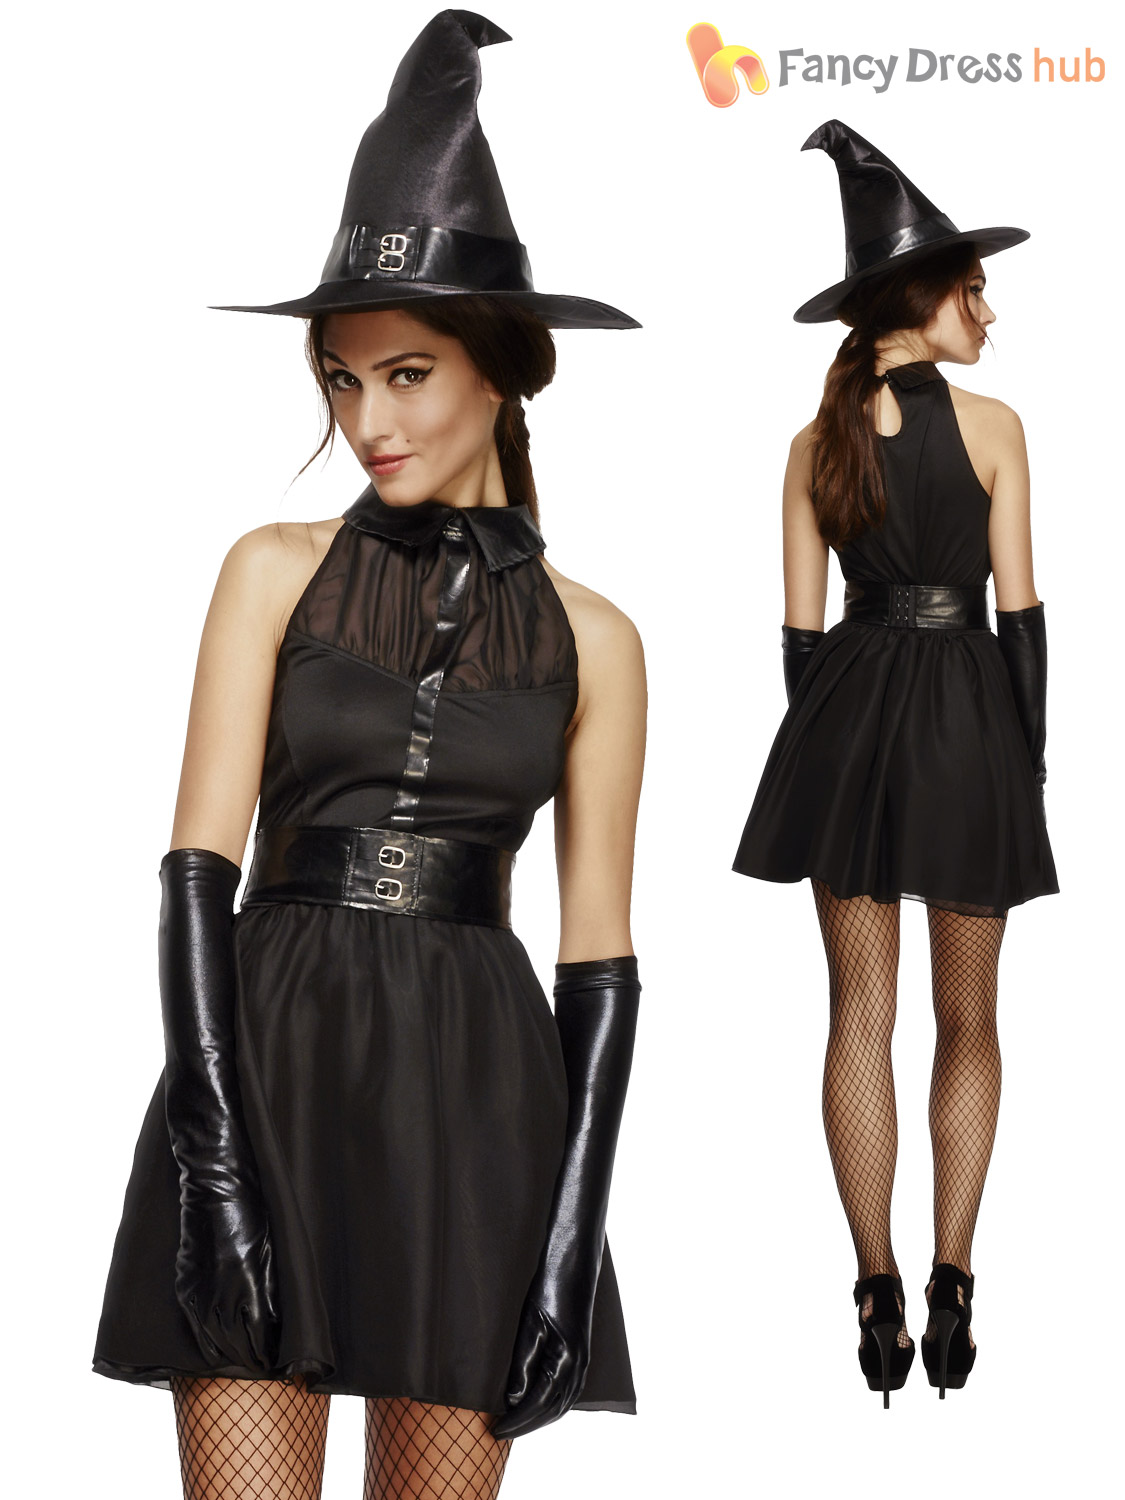 88003061f41 Bewitching Fever Vixen Costume - Dress Fancy Ladies Halloween Black Outfit